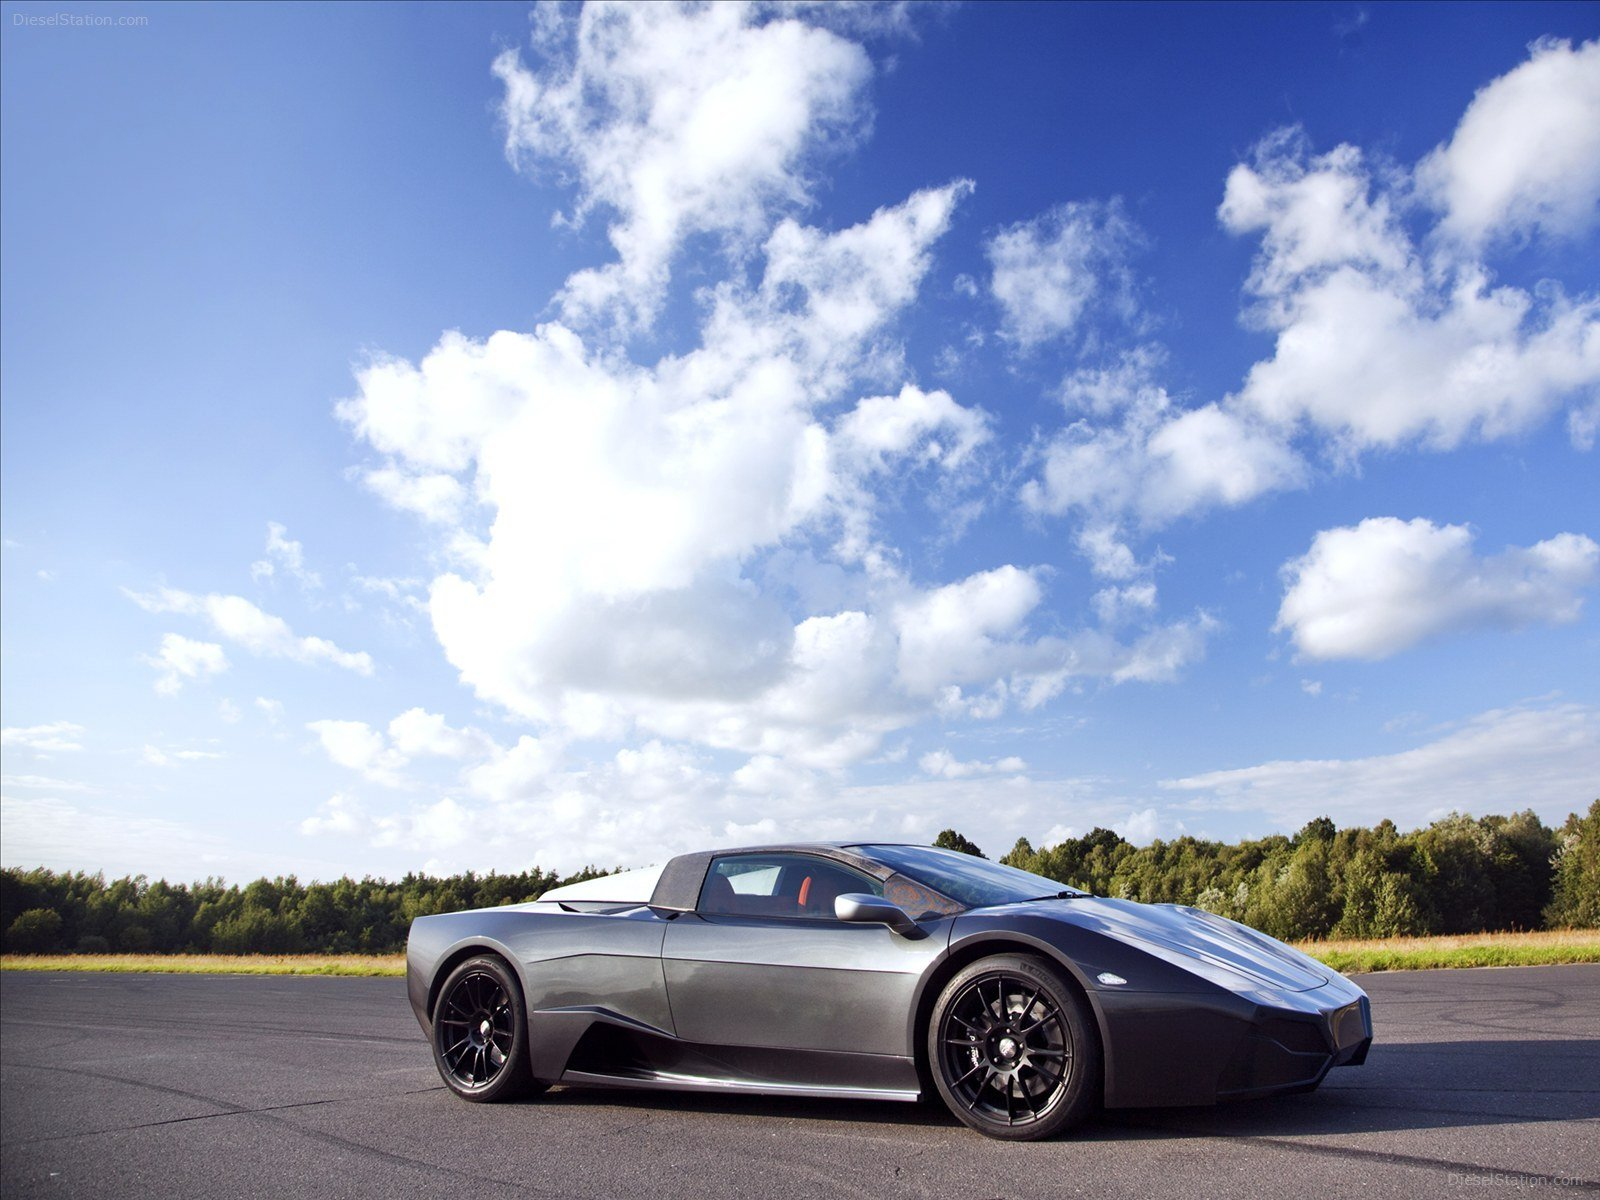 Latest Arrinera Supercar 2013 Exotic Car Wallpapers 14 Of 40 Free Download